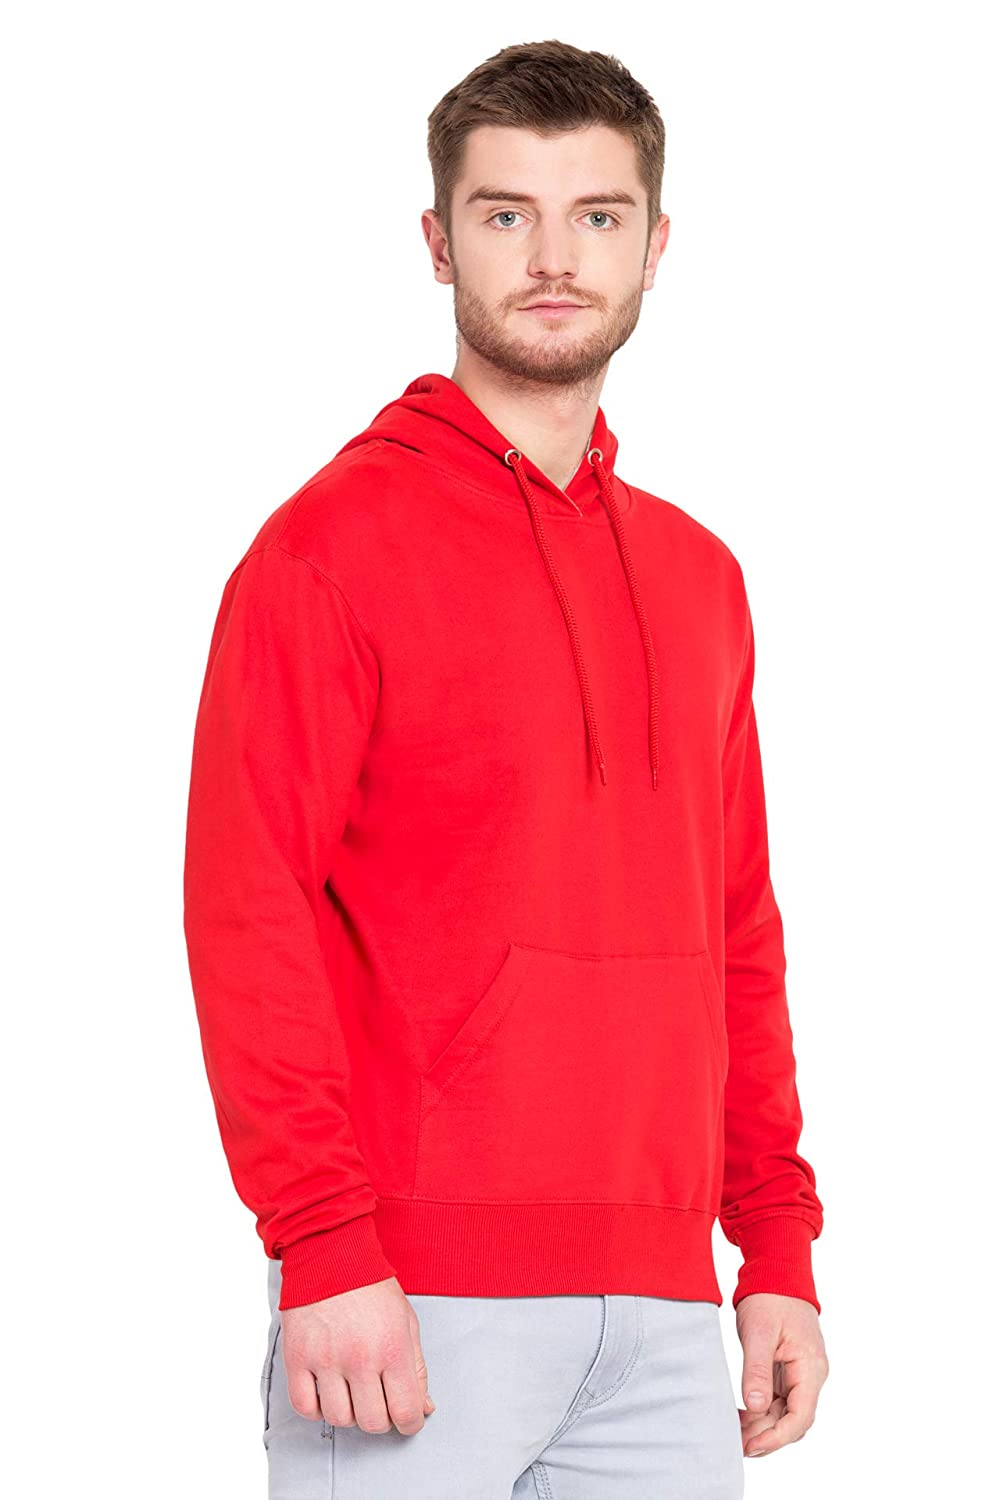 Fashion And Youth Men S Cotton Plain Red Hoodie Sweatshirt Men S Hoodies Jacket Mens Hoodies Hoodies For Mens Sweatshirt Red Color Amazon In Clothing Accessories Find the latest men's hoodies & sweatshirts at zumiez. cotton plain red hoodie sweatshirt